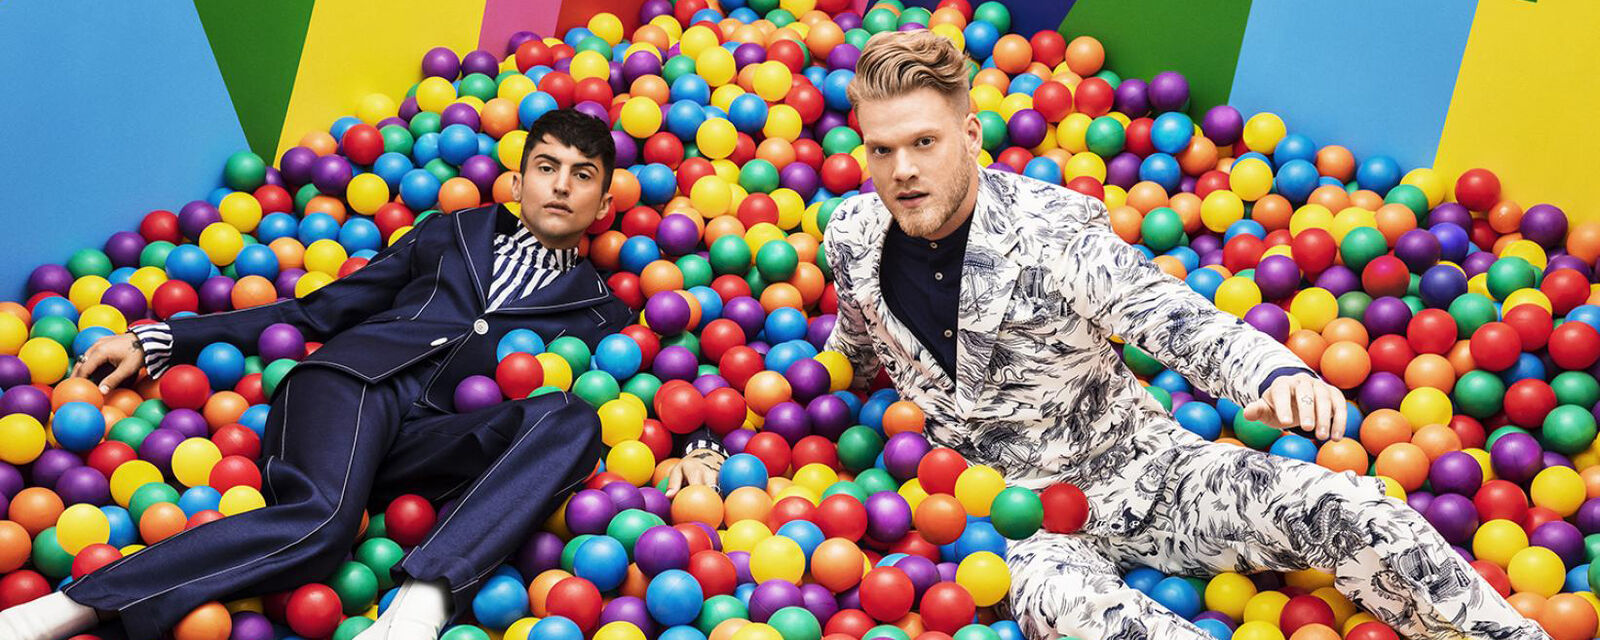 PARKING PASSES ONLY Superfruit